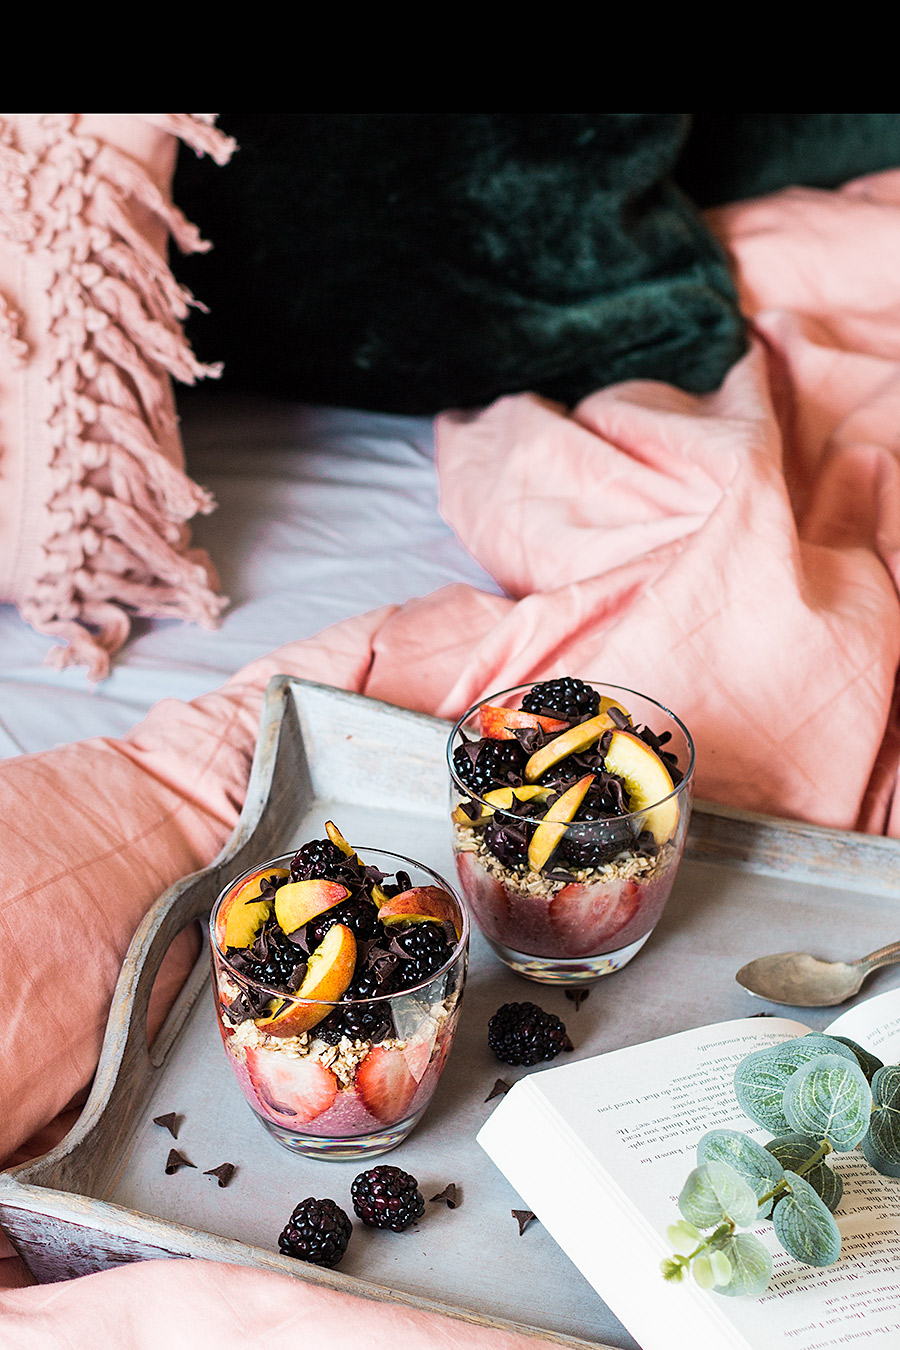 Berries chia seeds parfait breakfast by Laura Domingo